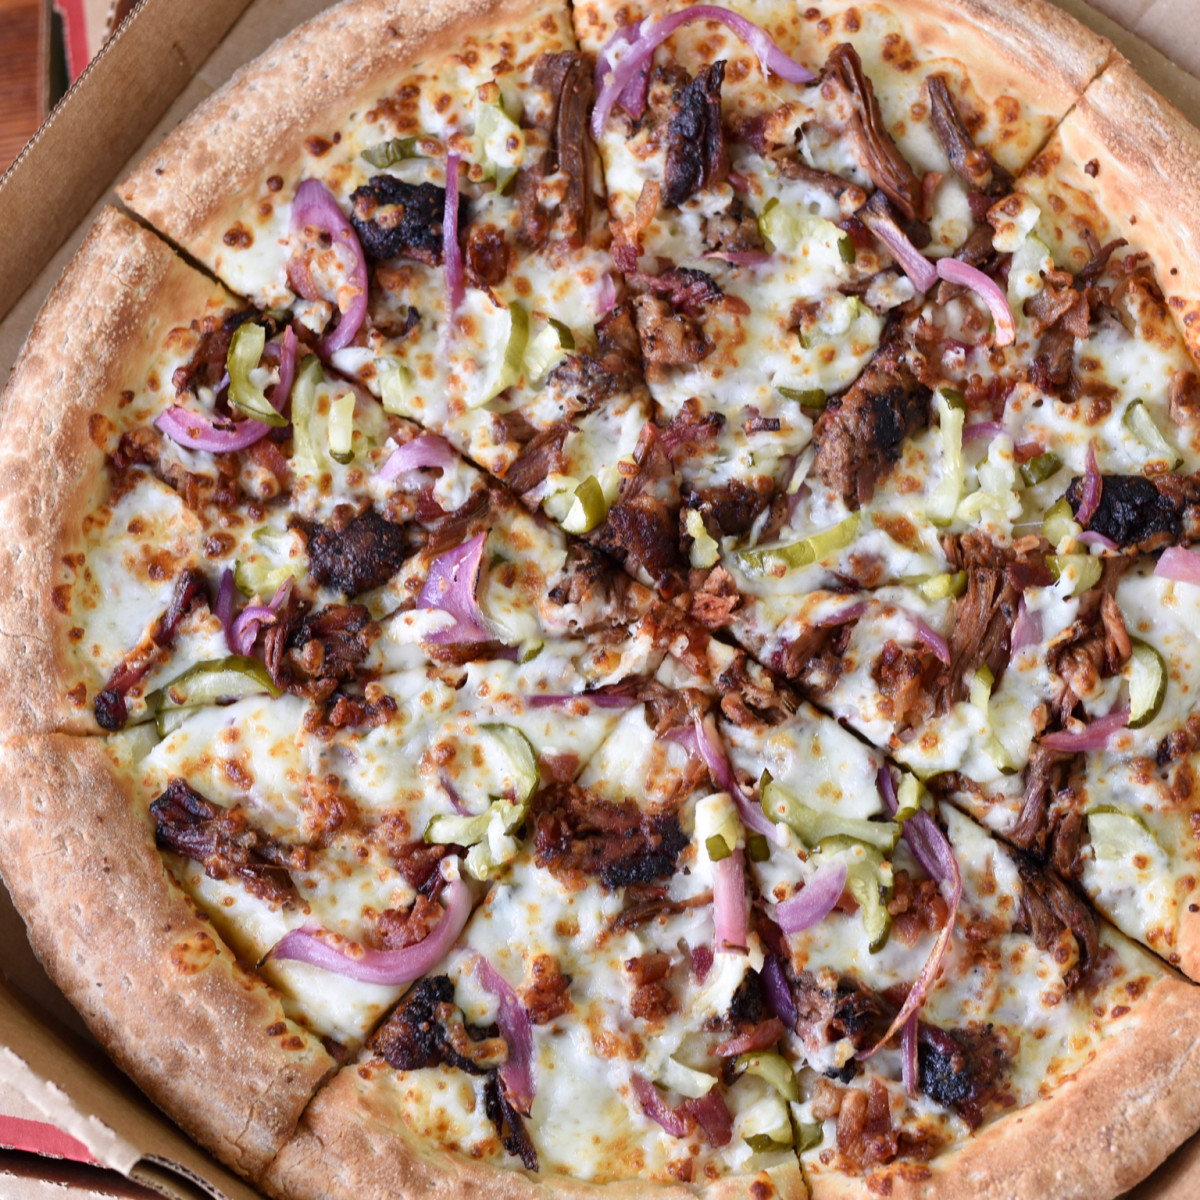 Papa John's Killen's barbecue brisket pizza